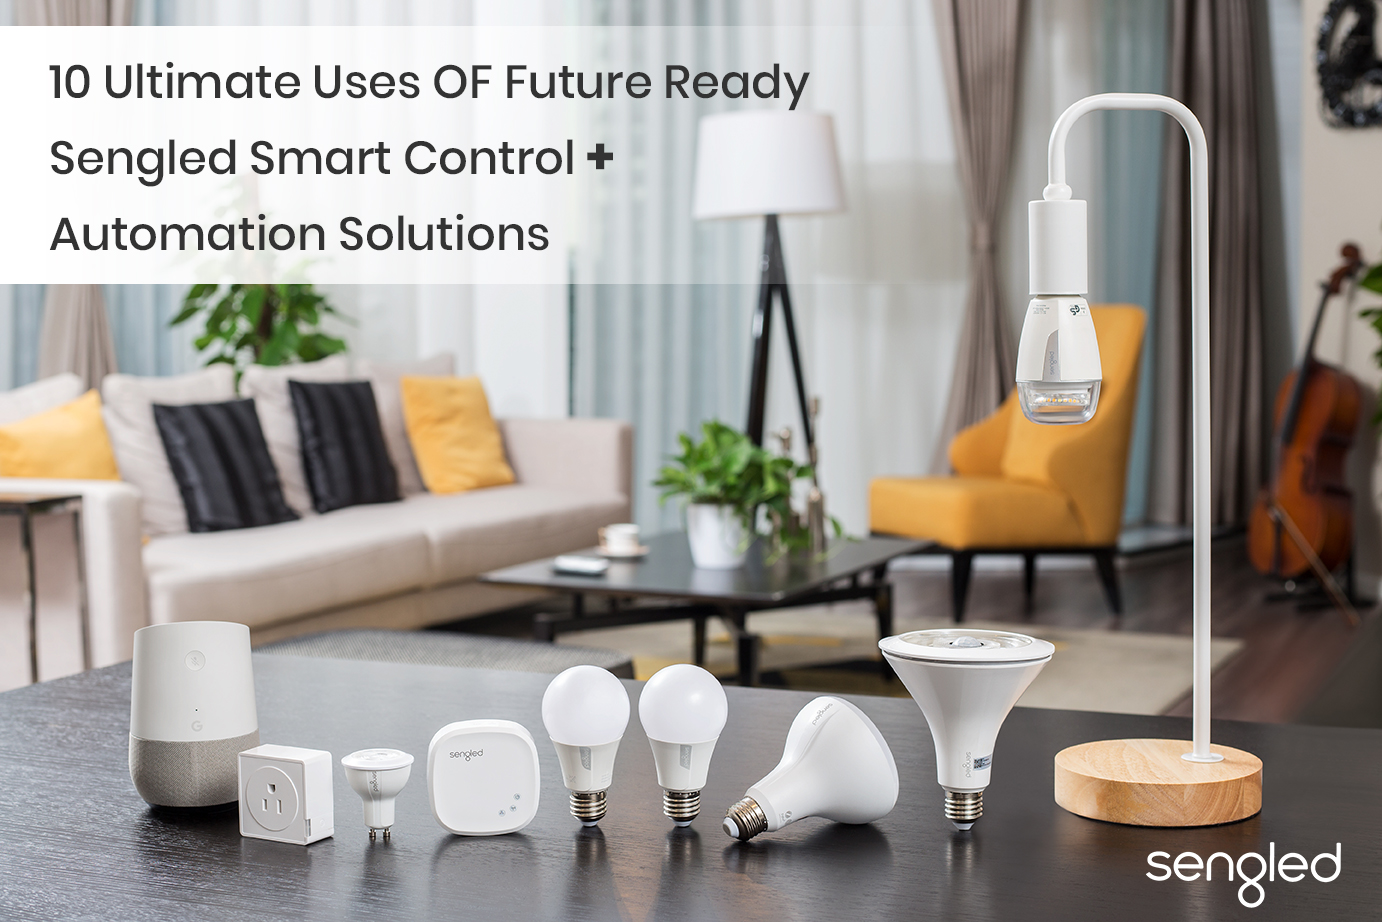 10-Ultimate-Uses-OF-Future-Ready-Sengled-Smart-Control